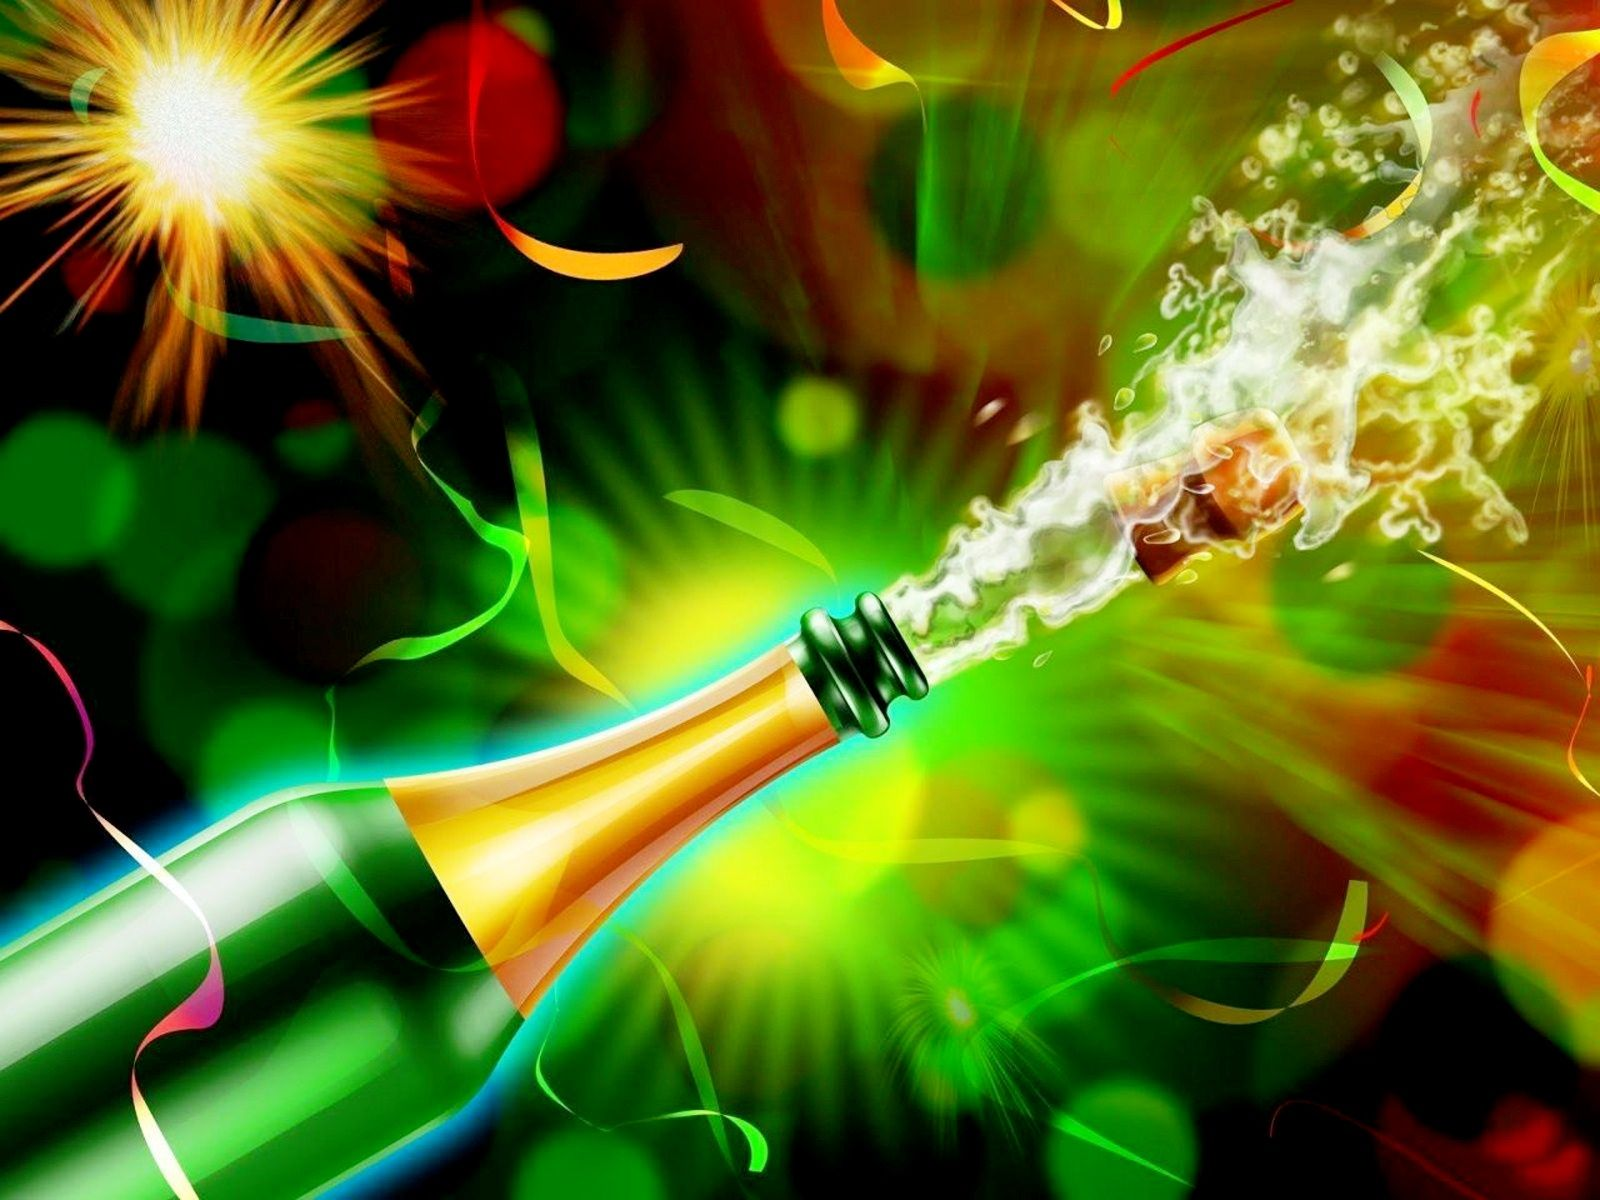 hd 3d New Year eve wallpapers Happy new year wallpaper